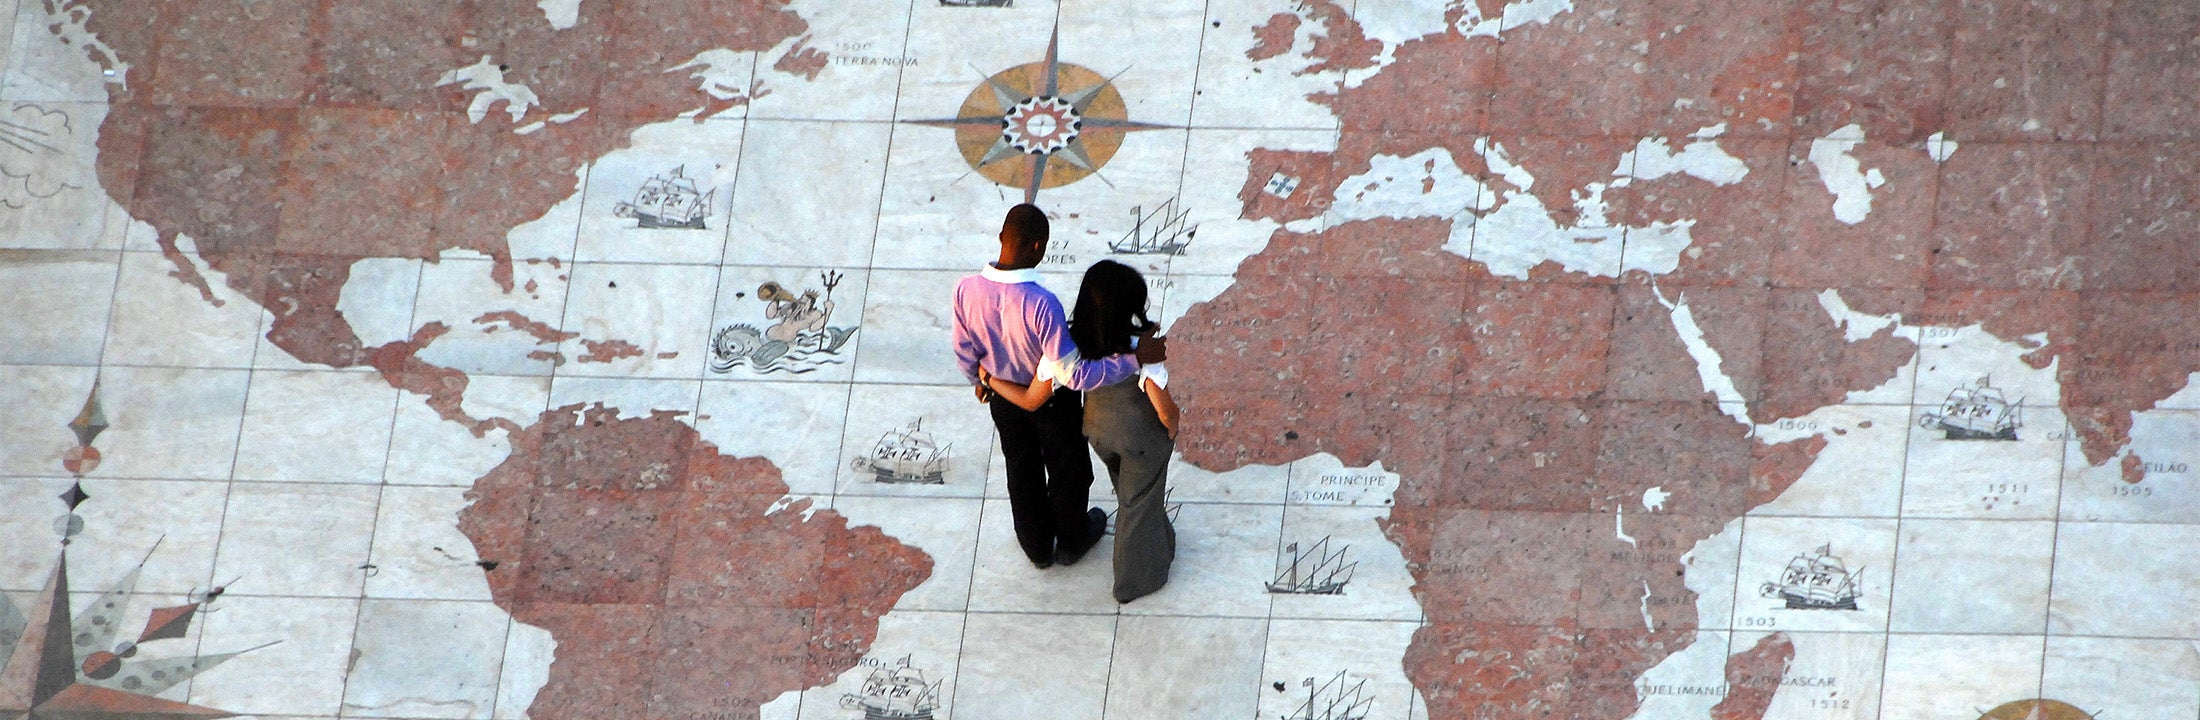 A man and a woman are standing on a monument in Lissabon that marks the main routes of the Portuguese expansion